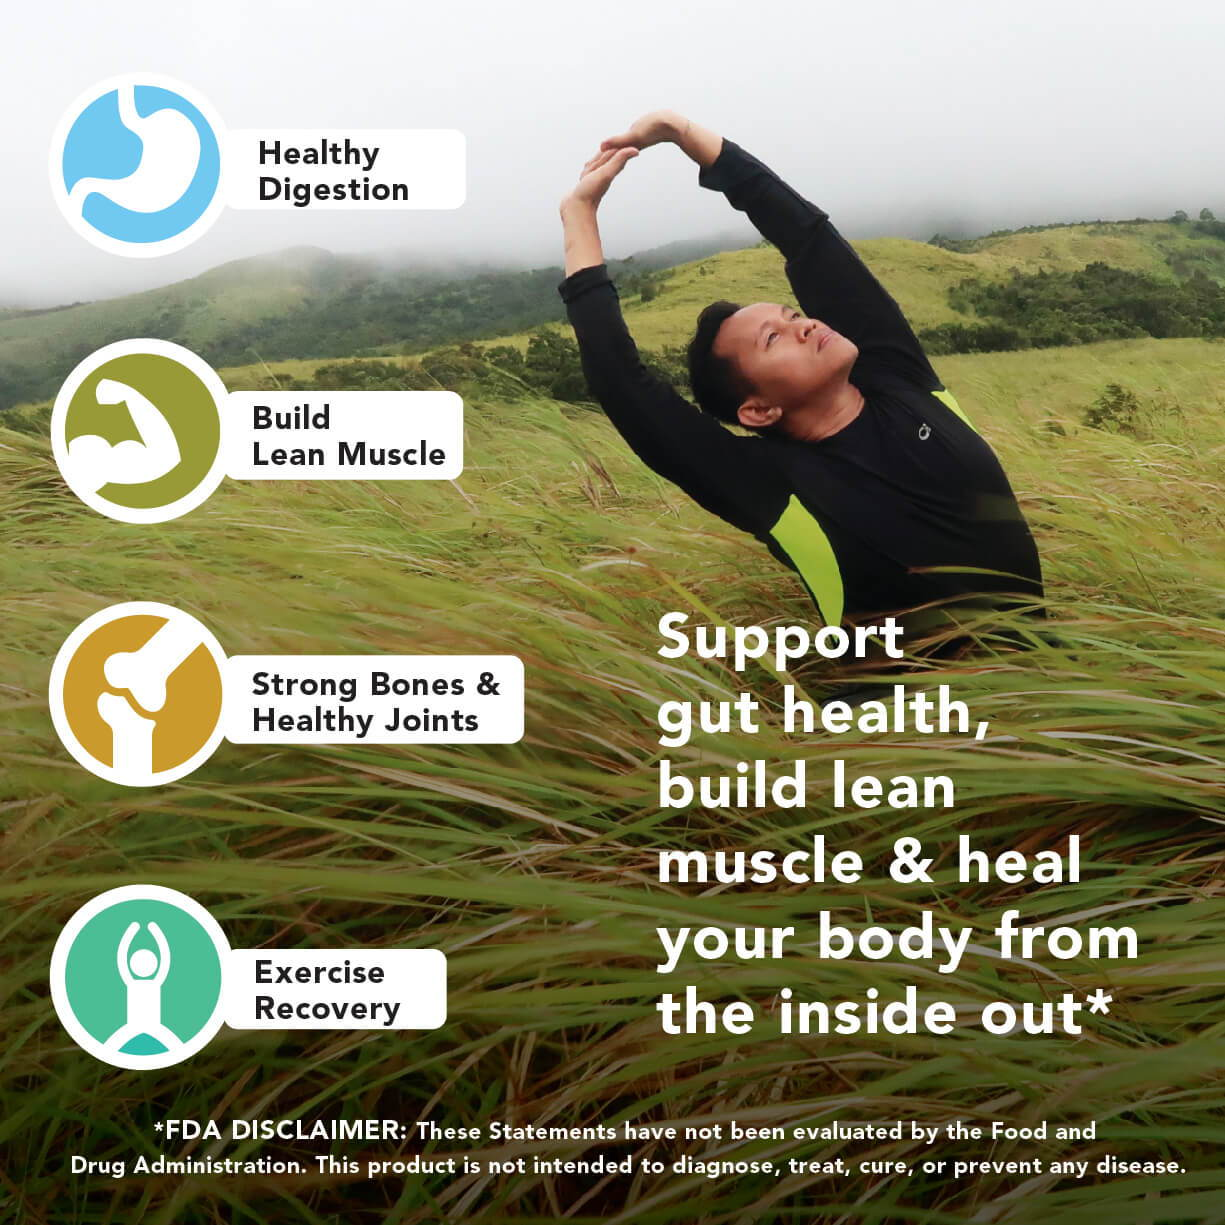 Collagen Peptides For gut health, healthy digestion, build lean muscle, strong bones and healthy joints.